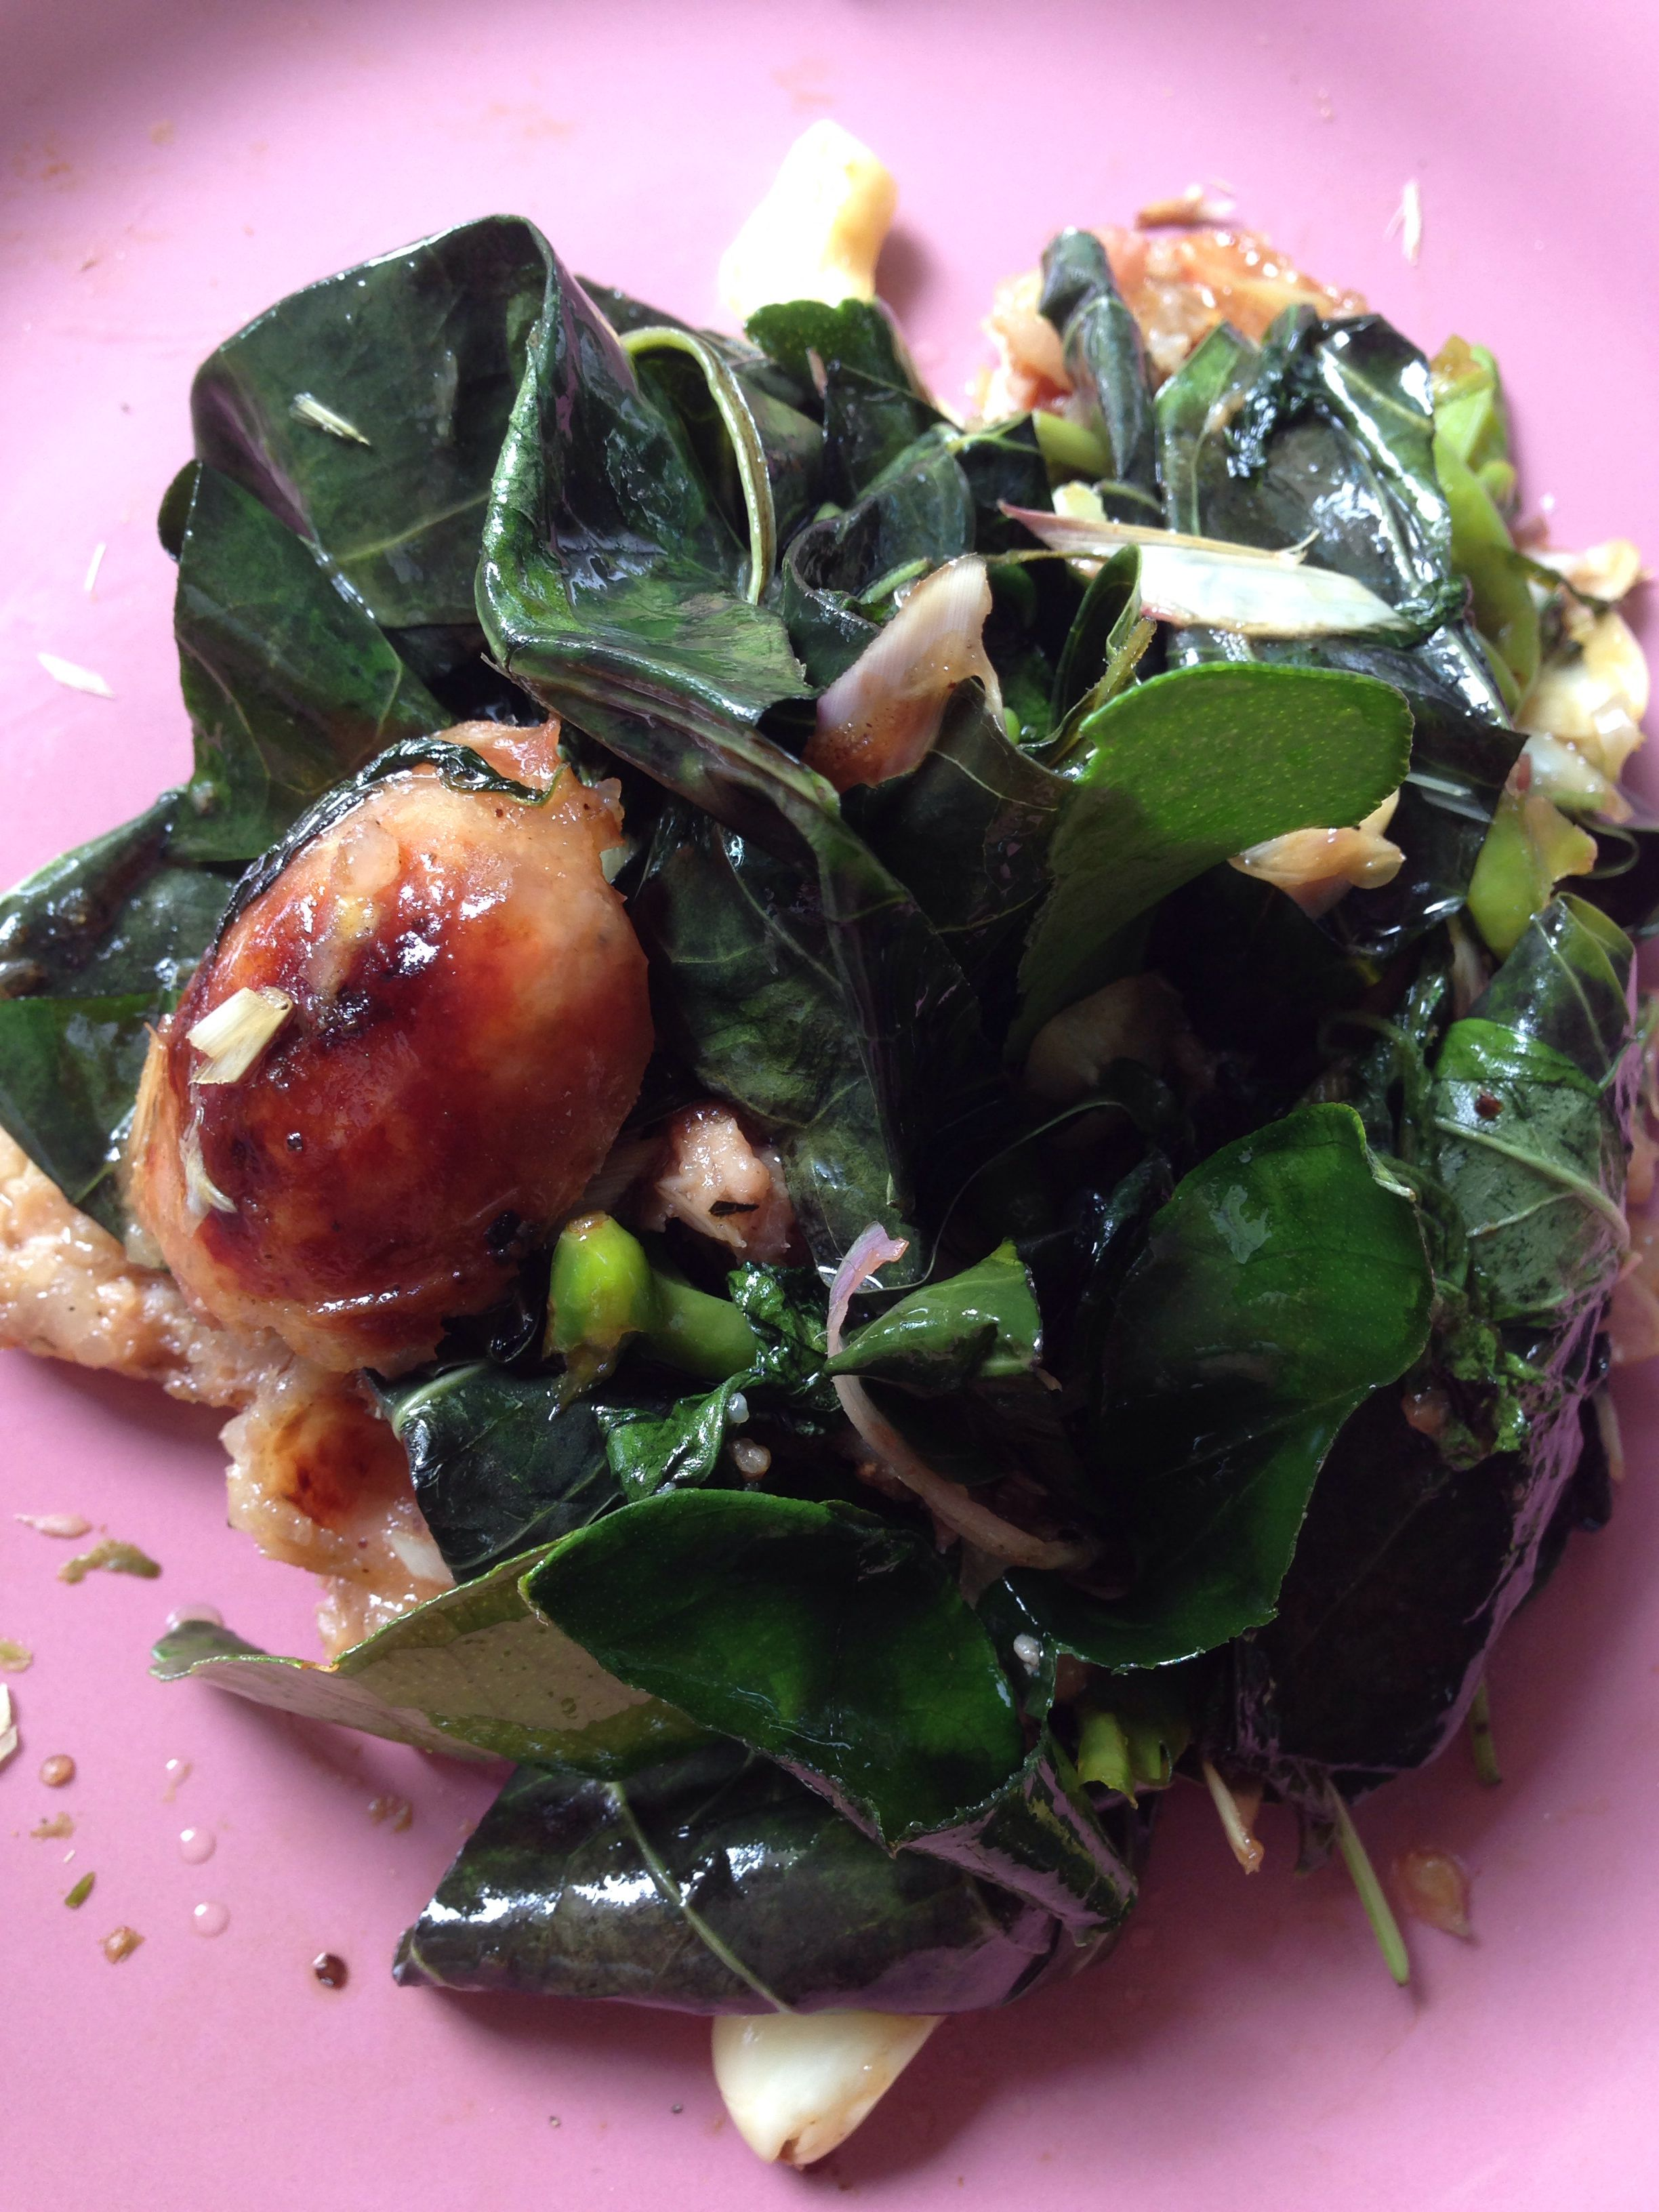 Stir-fried Thai spicy sausage with great morinda leaves (in my garden).